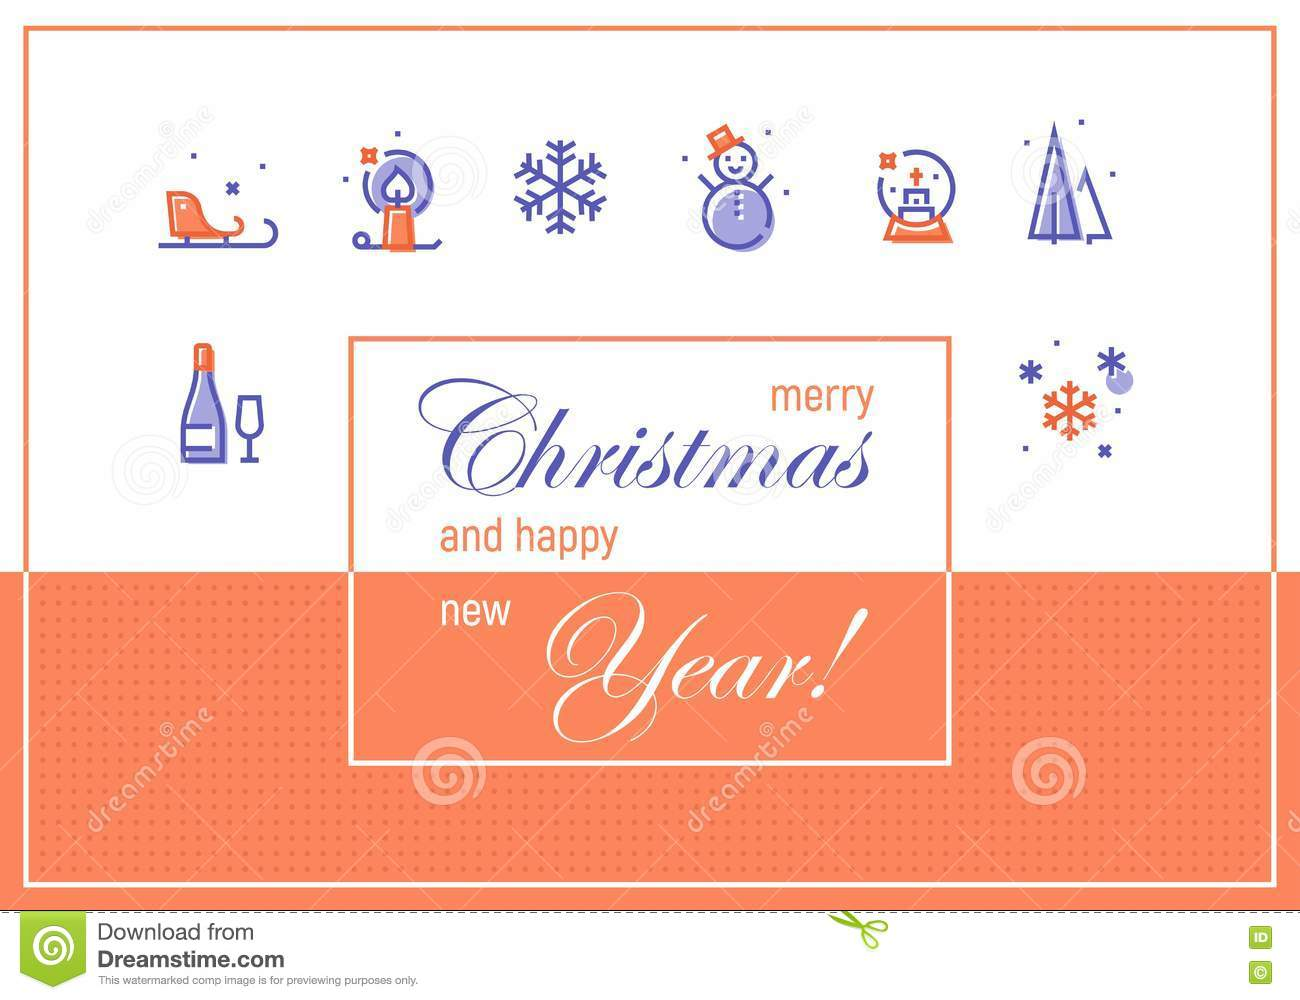 Email New Year Cards Merry Christmas And Happy New Year 2018